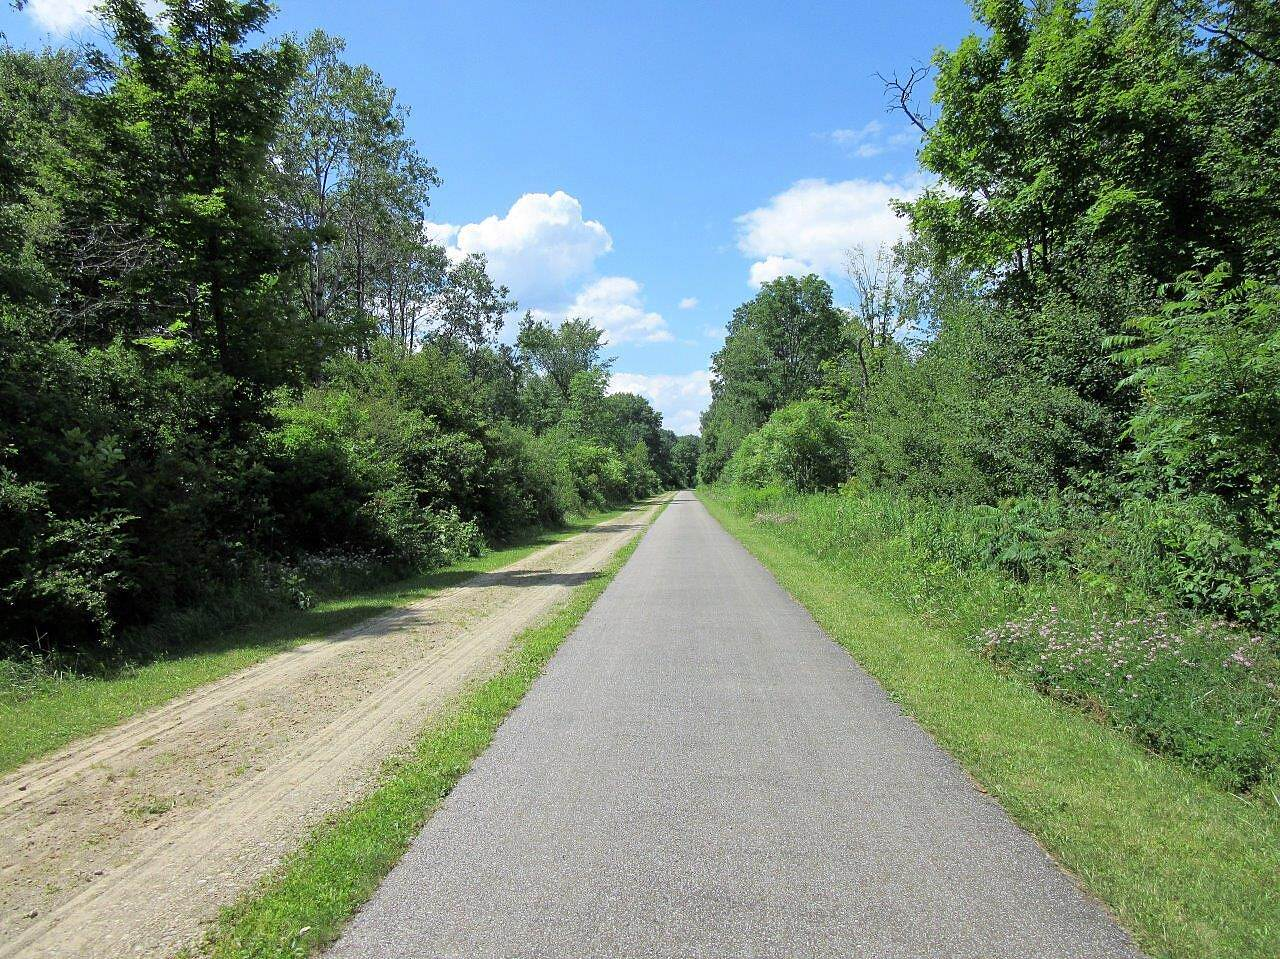 East Branch Trail (PA) Amish Buggy Trail along side July, 2017-Amish buggy trail runs along the Paved Trail